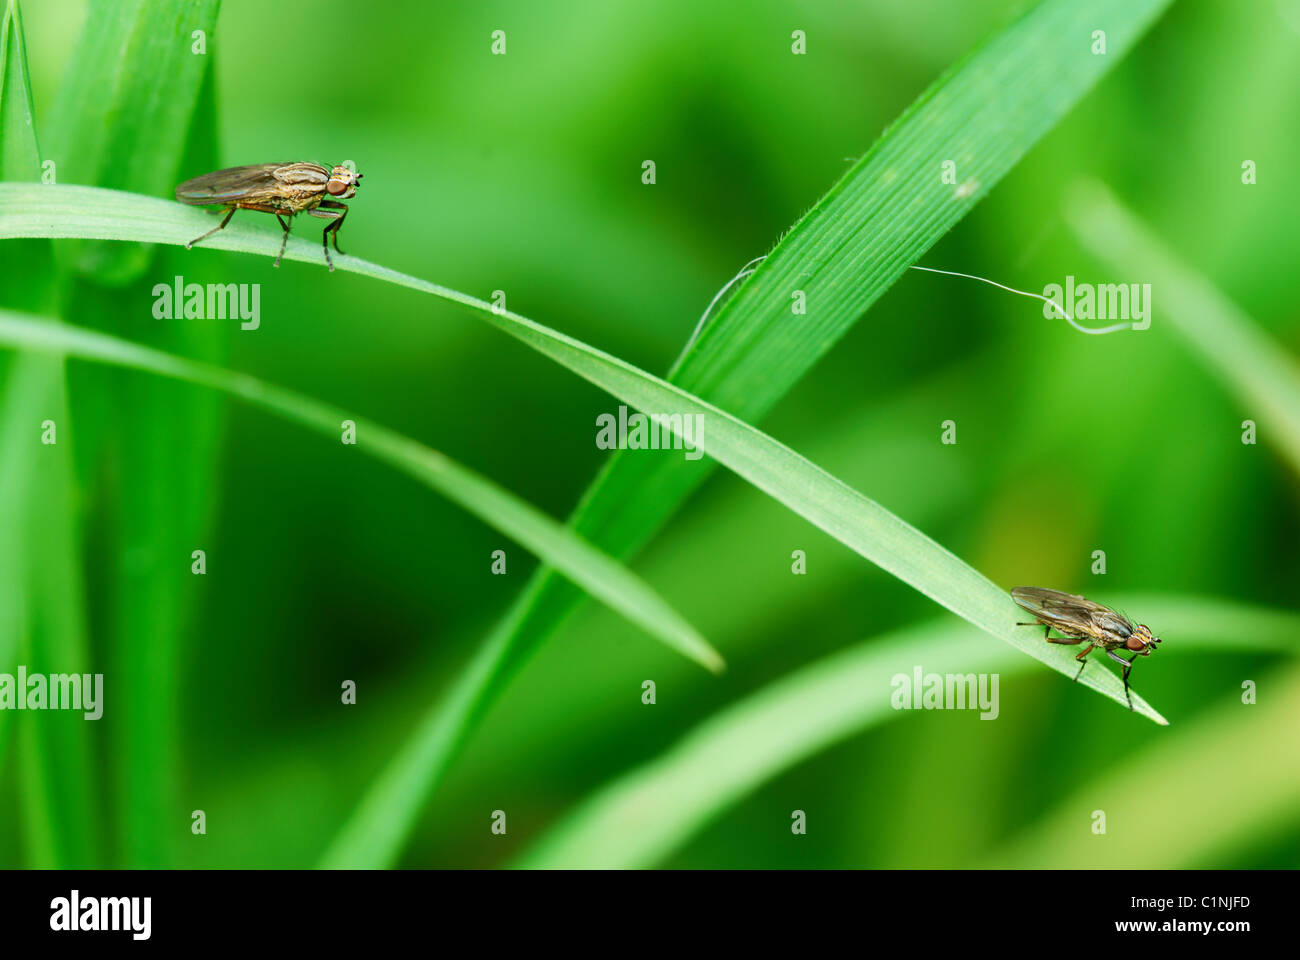 single blade of grass. Two Flies Sitting On The Single Blade Of Grass - Stock Image